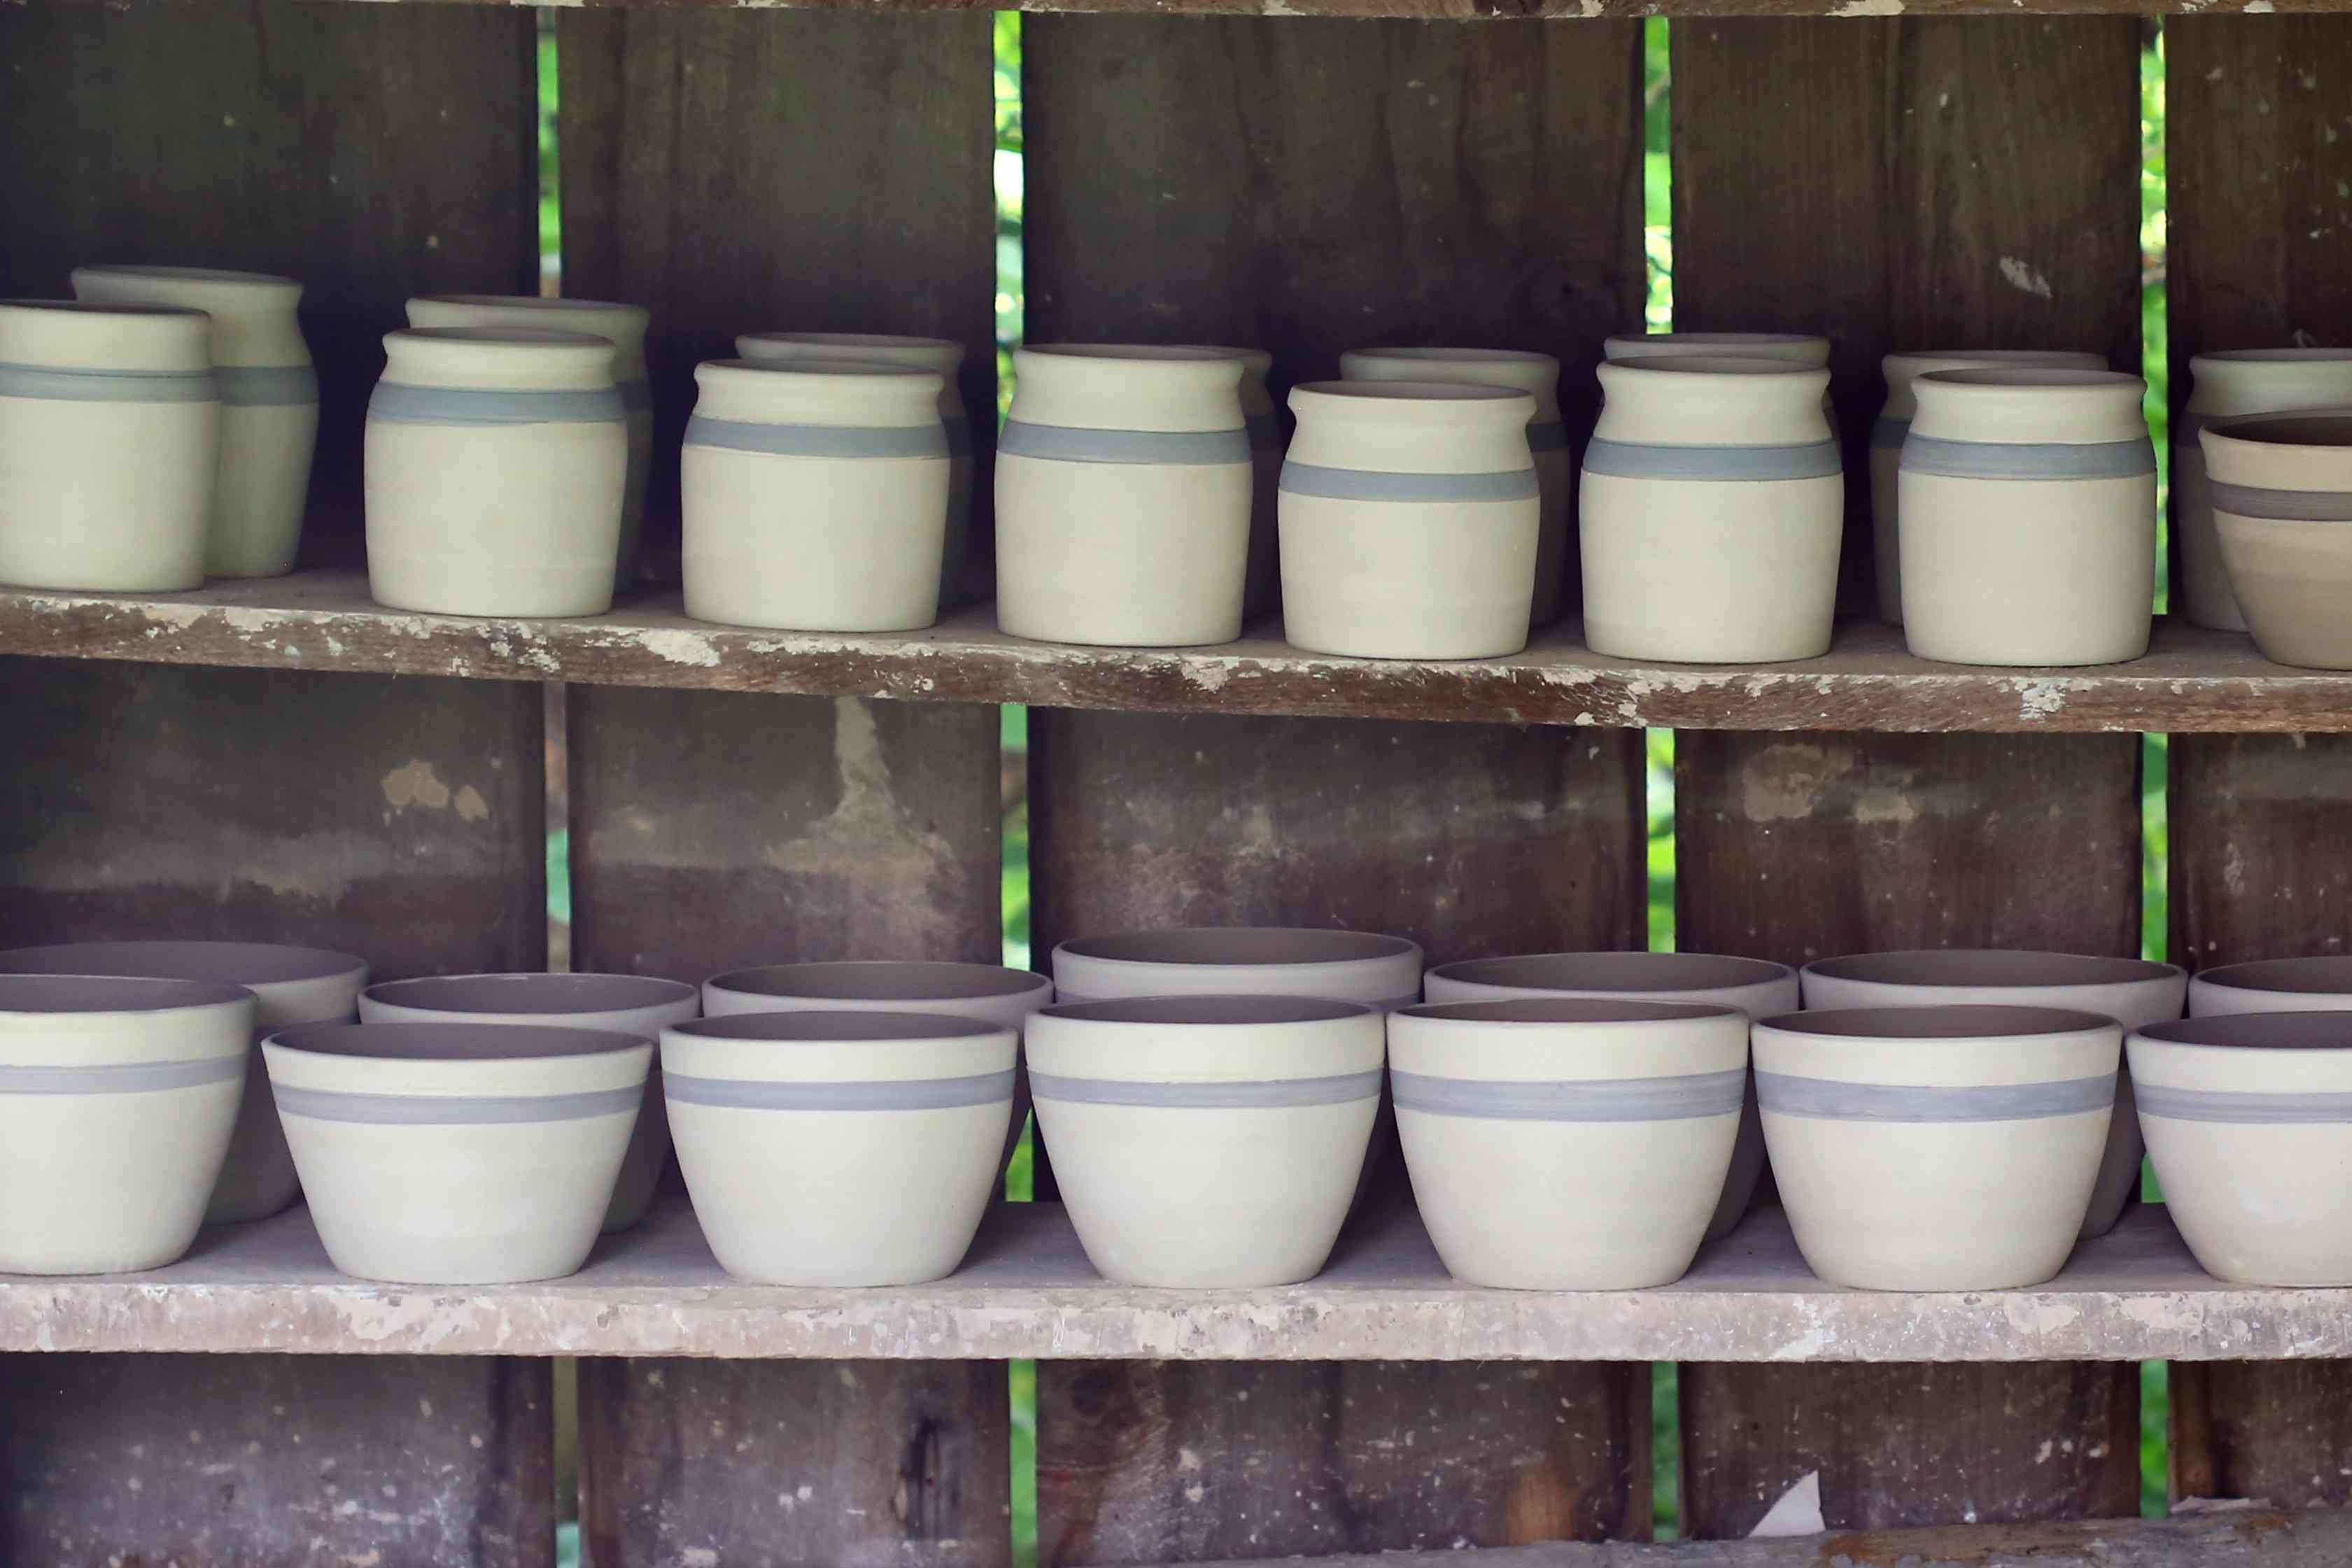 Rows of pottery aligned on simple utility shelves